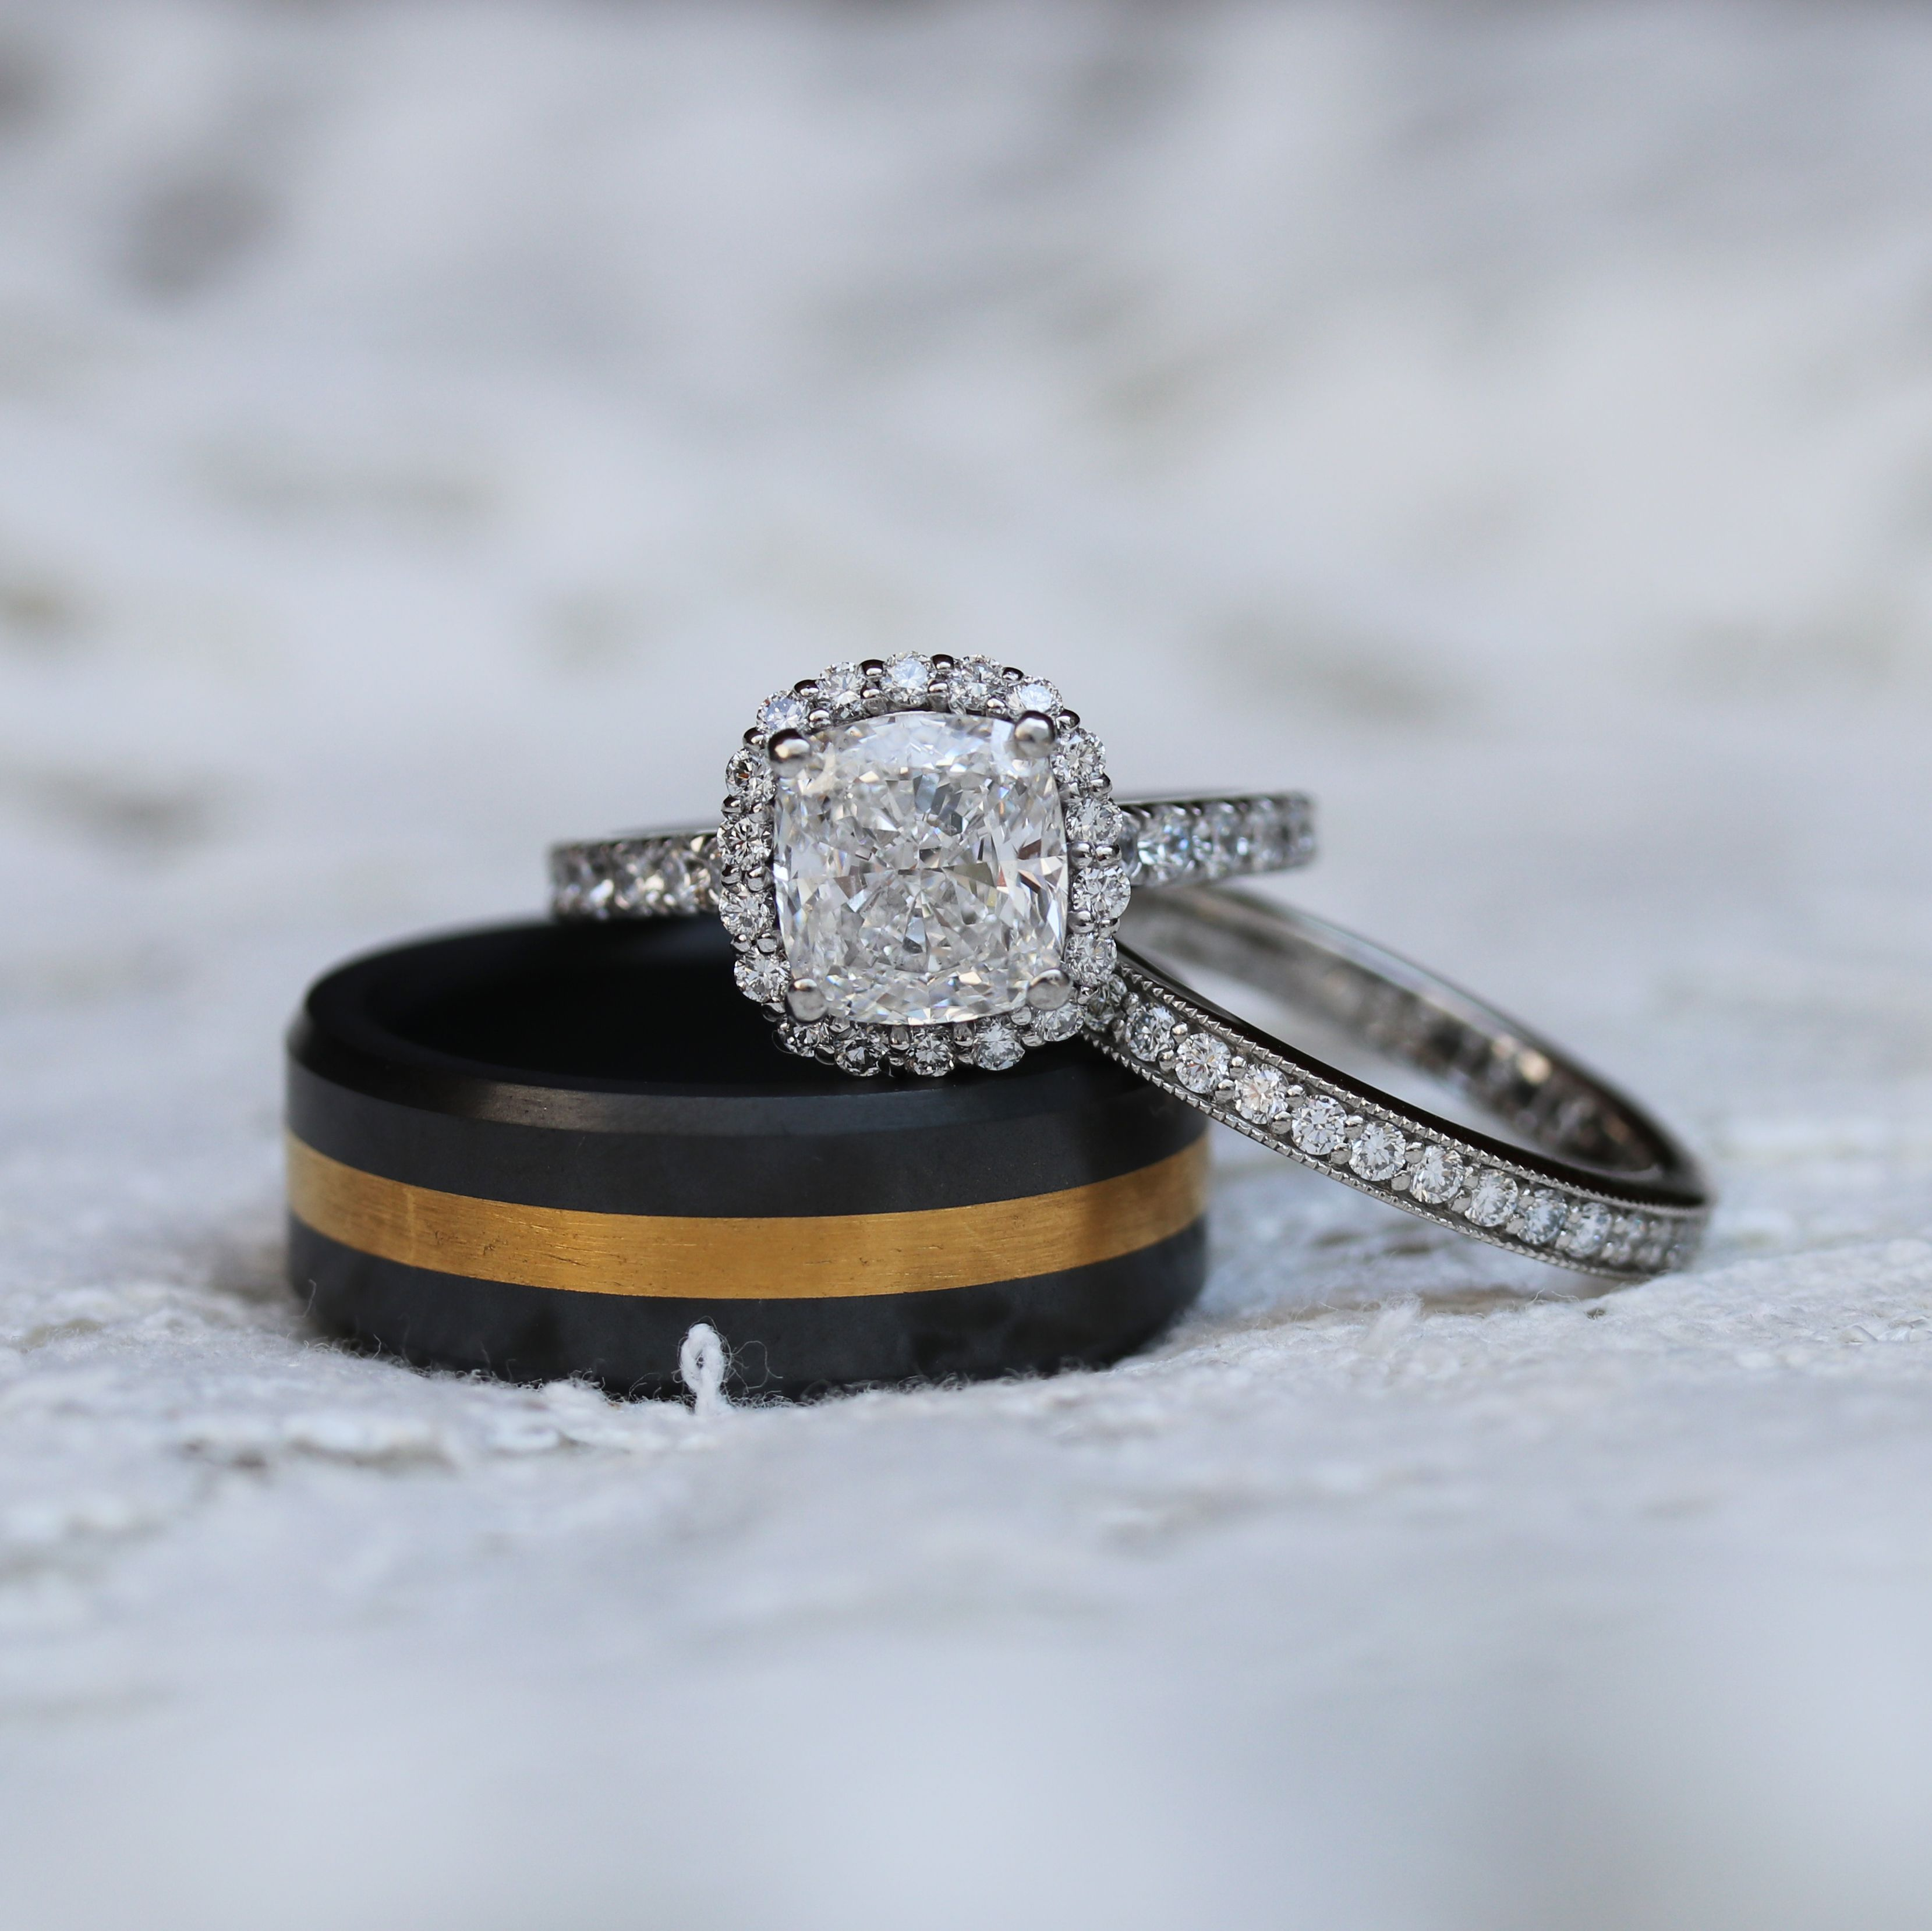 Lab Grown Diamond Engagement Rings And Wedding Bands Find The Perfect Match For Your Bridal Lab Grown Diamonds Engagement Engagement Rings Diamond Engagement